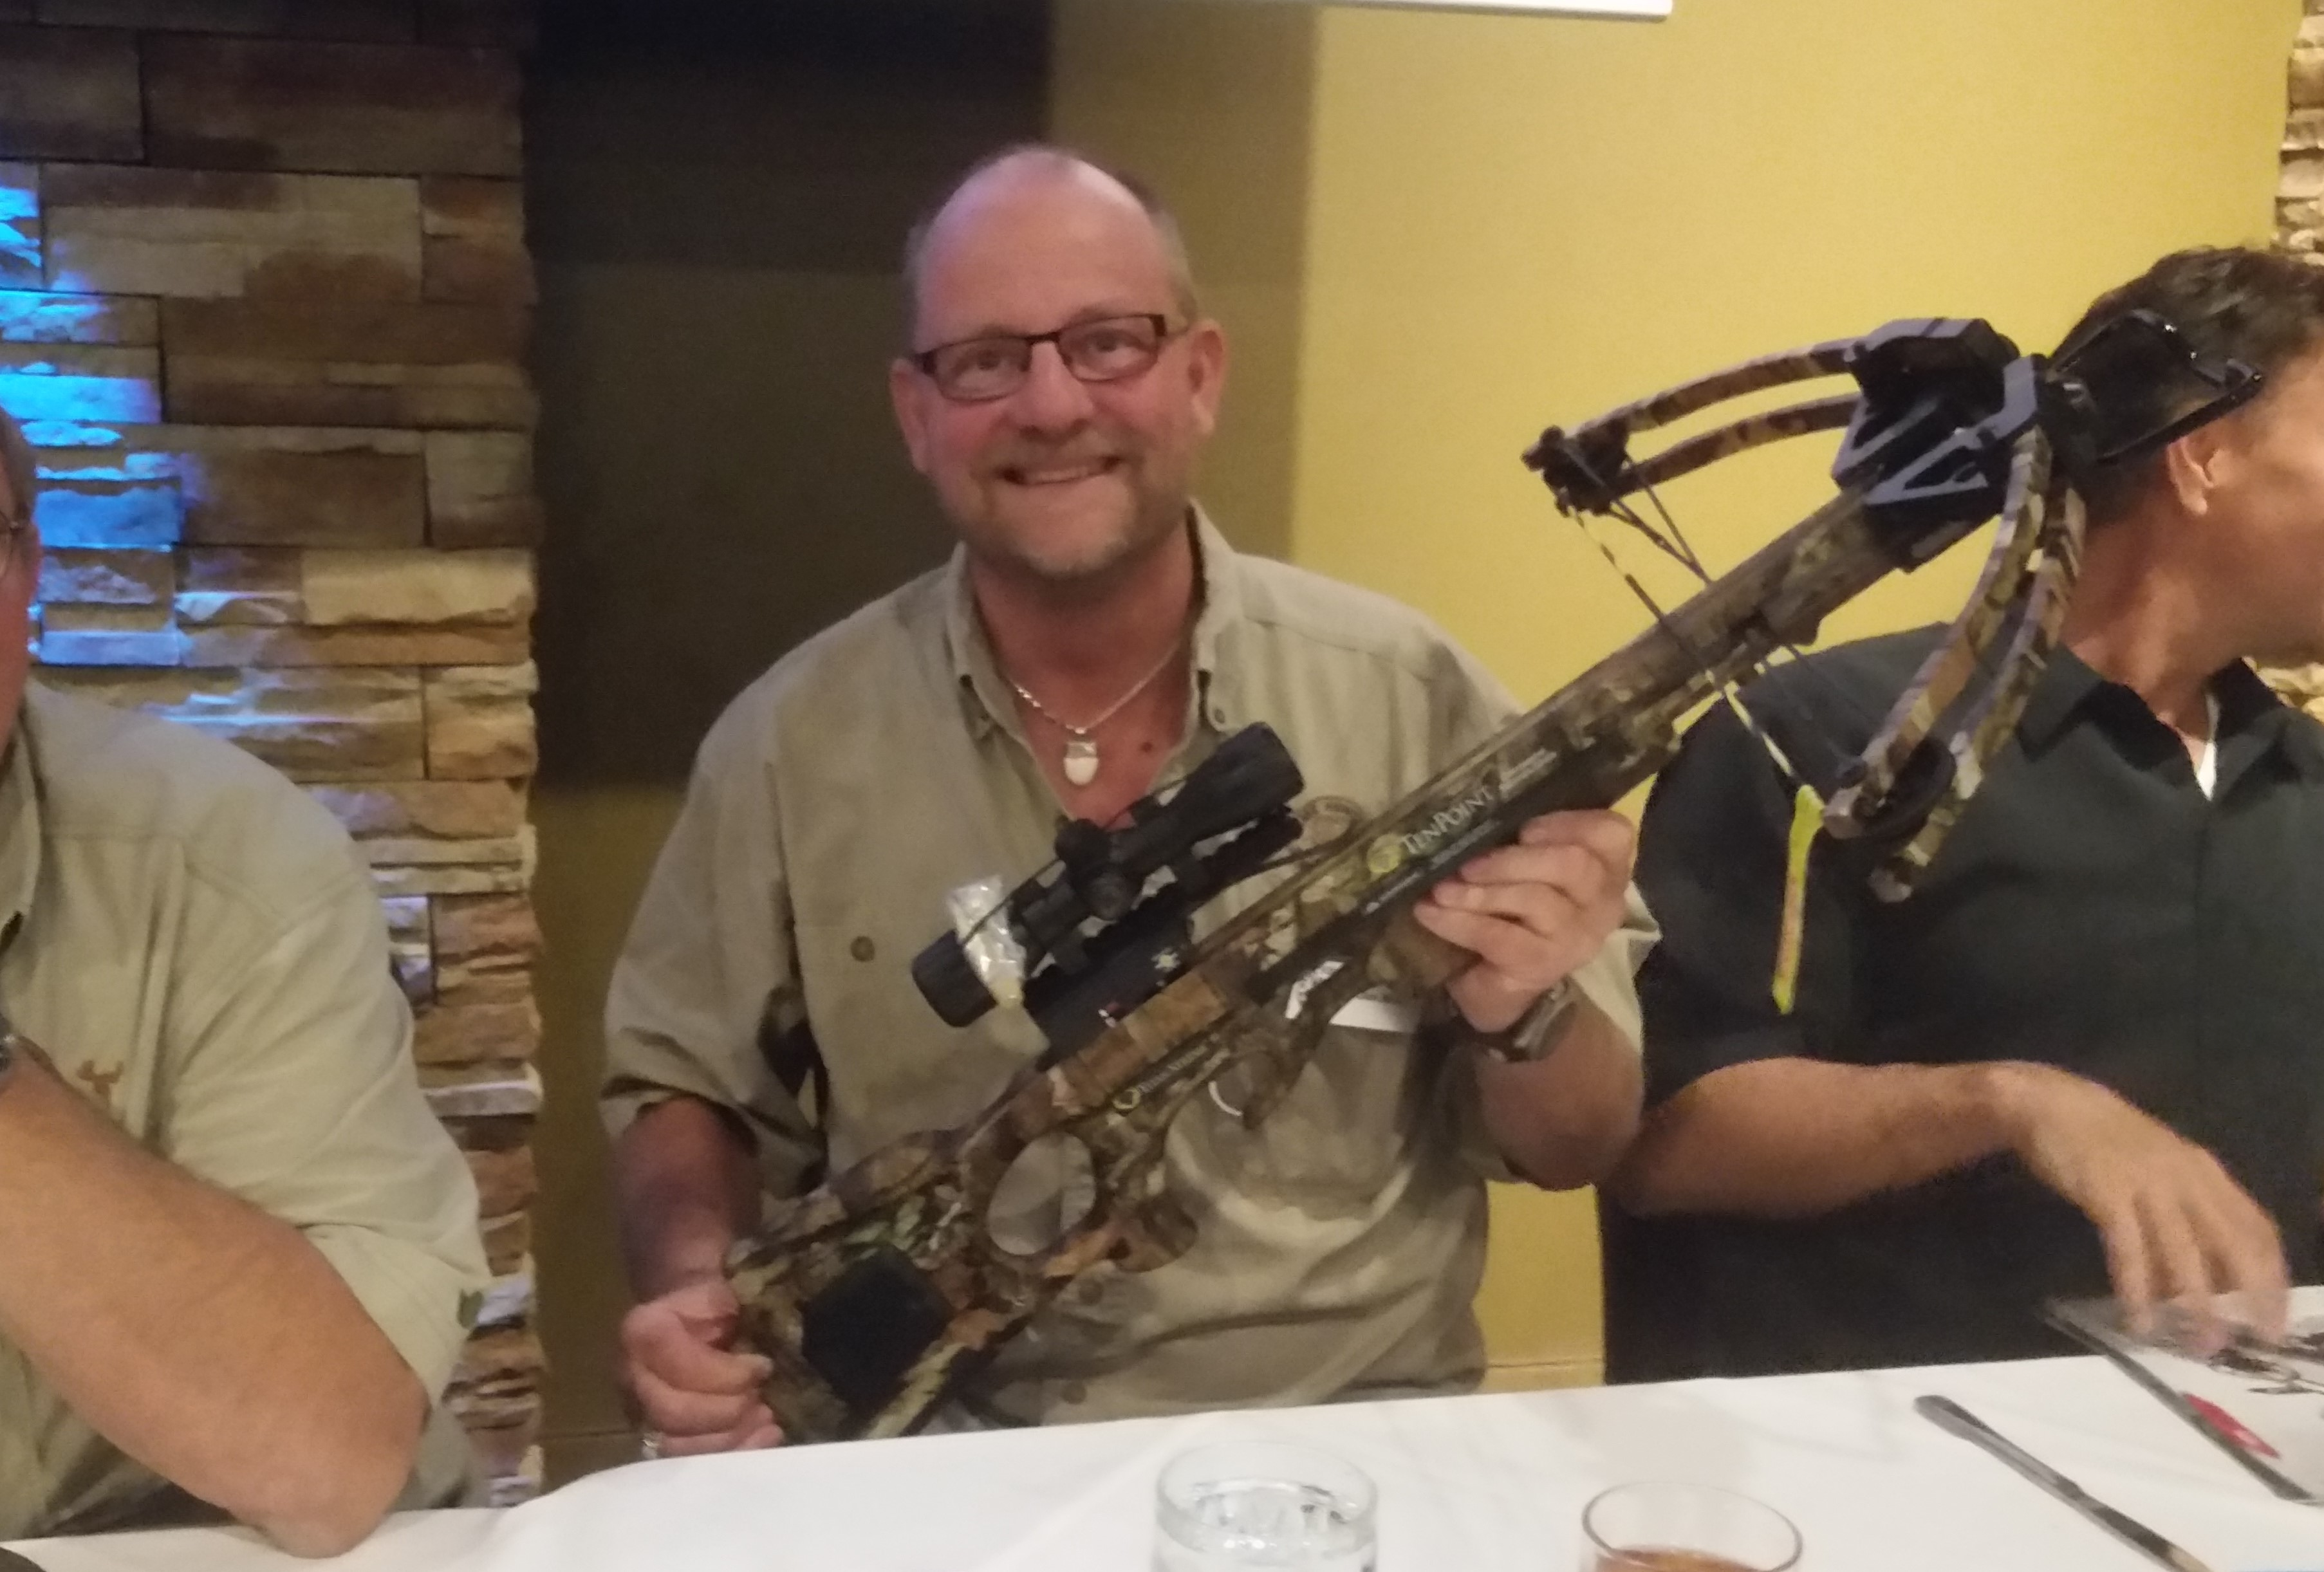 Jim Mraz wins a TenPoint Cross Bow at the May 2016 Meeting